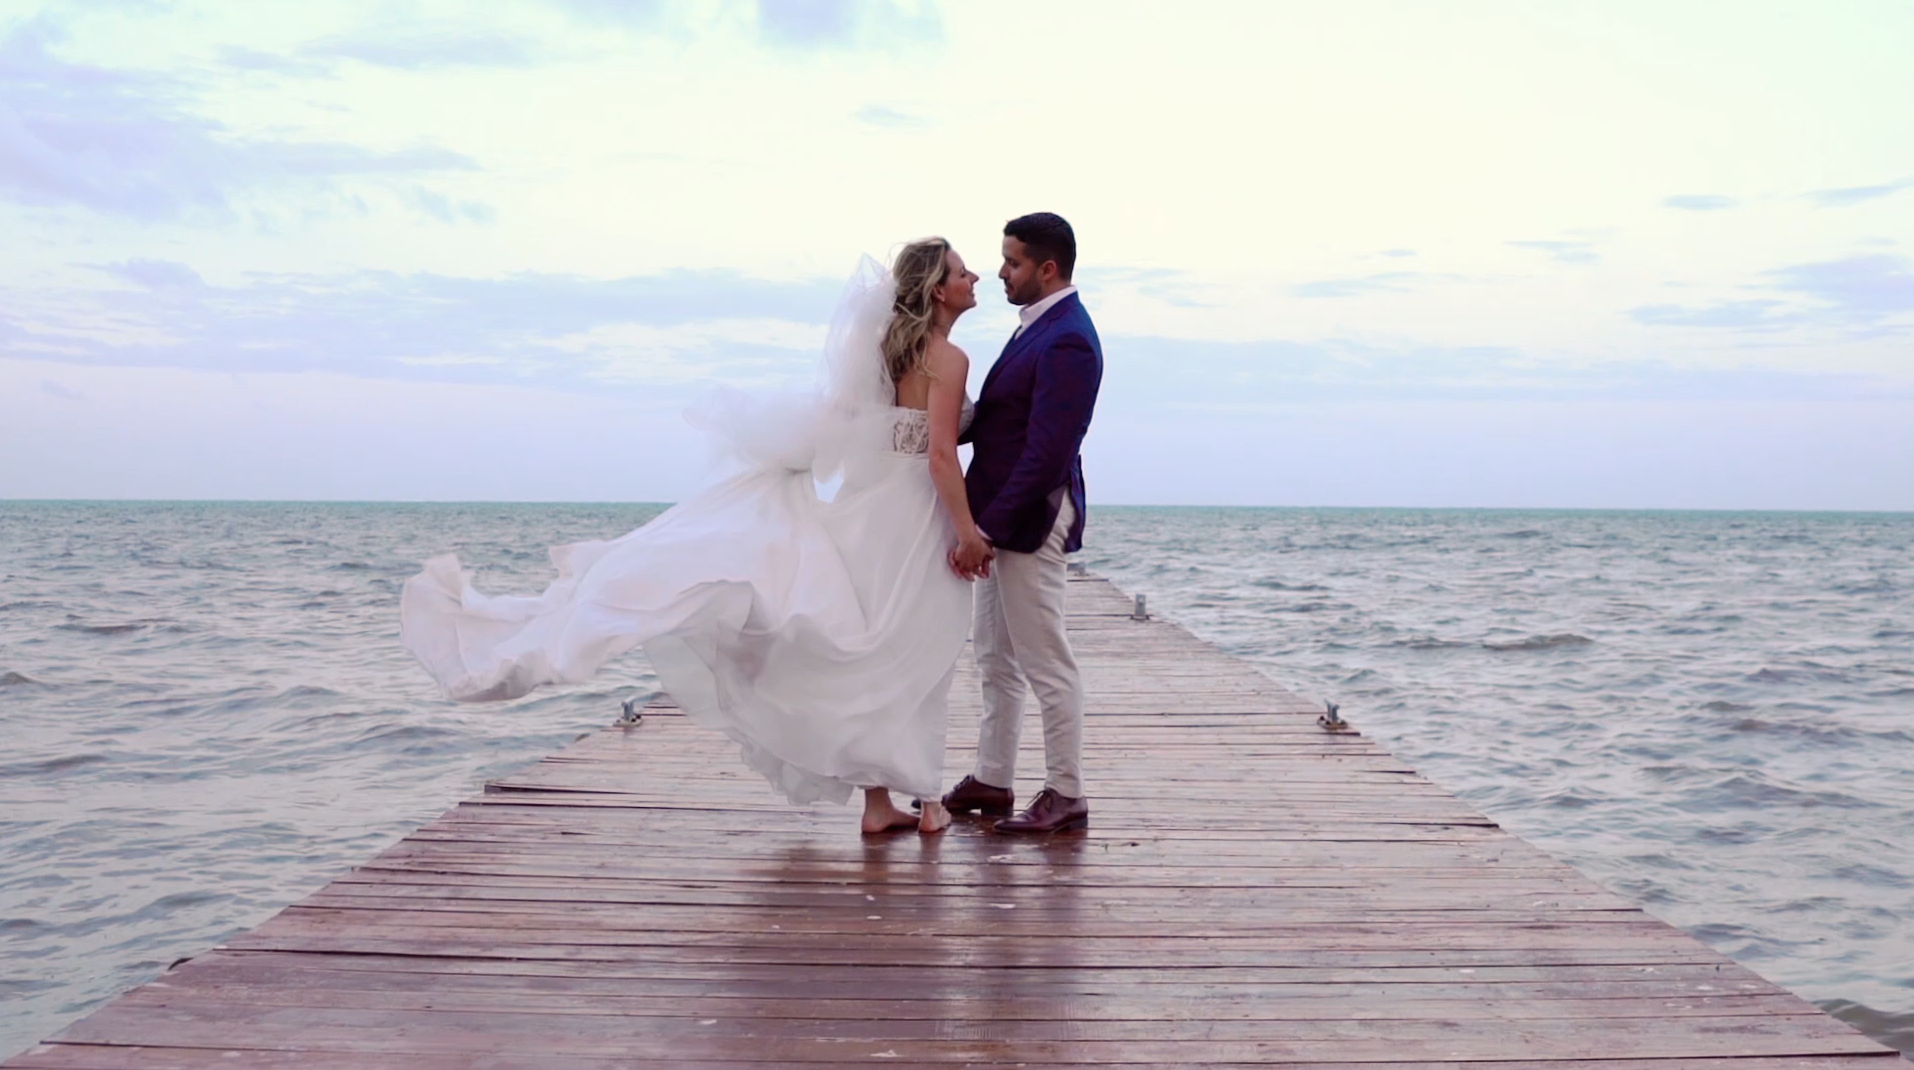 Johnfrank + Amy | Cancún, Mexico | Moon Palace Resorts & Spa